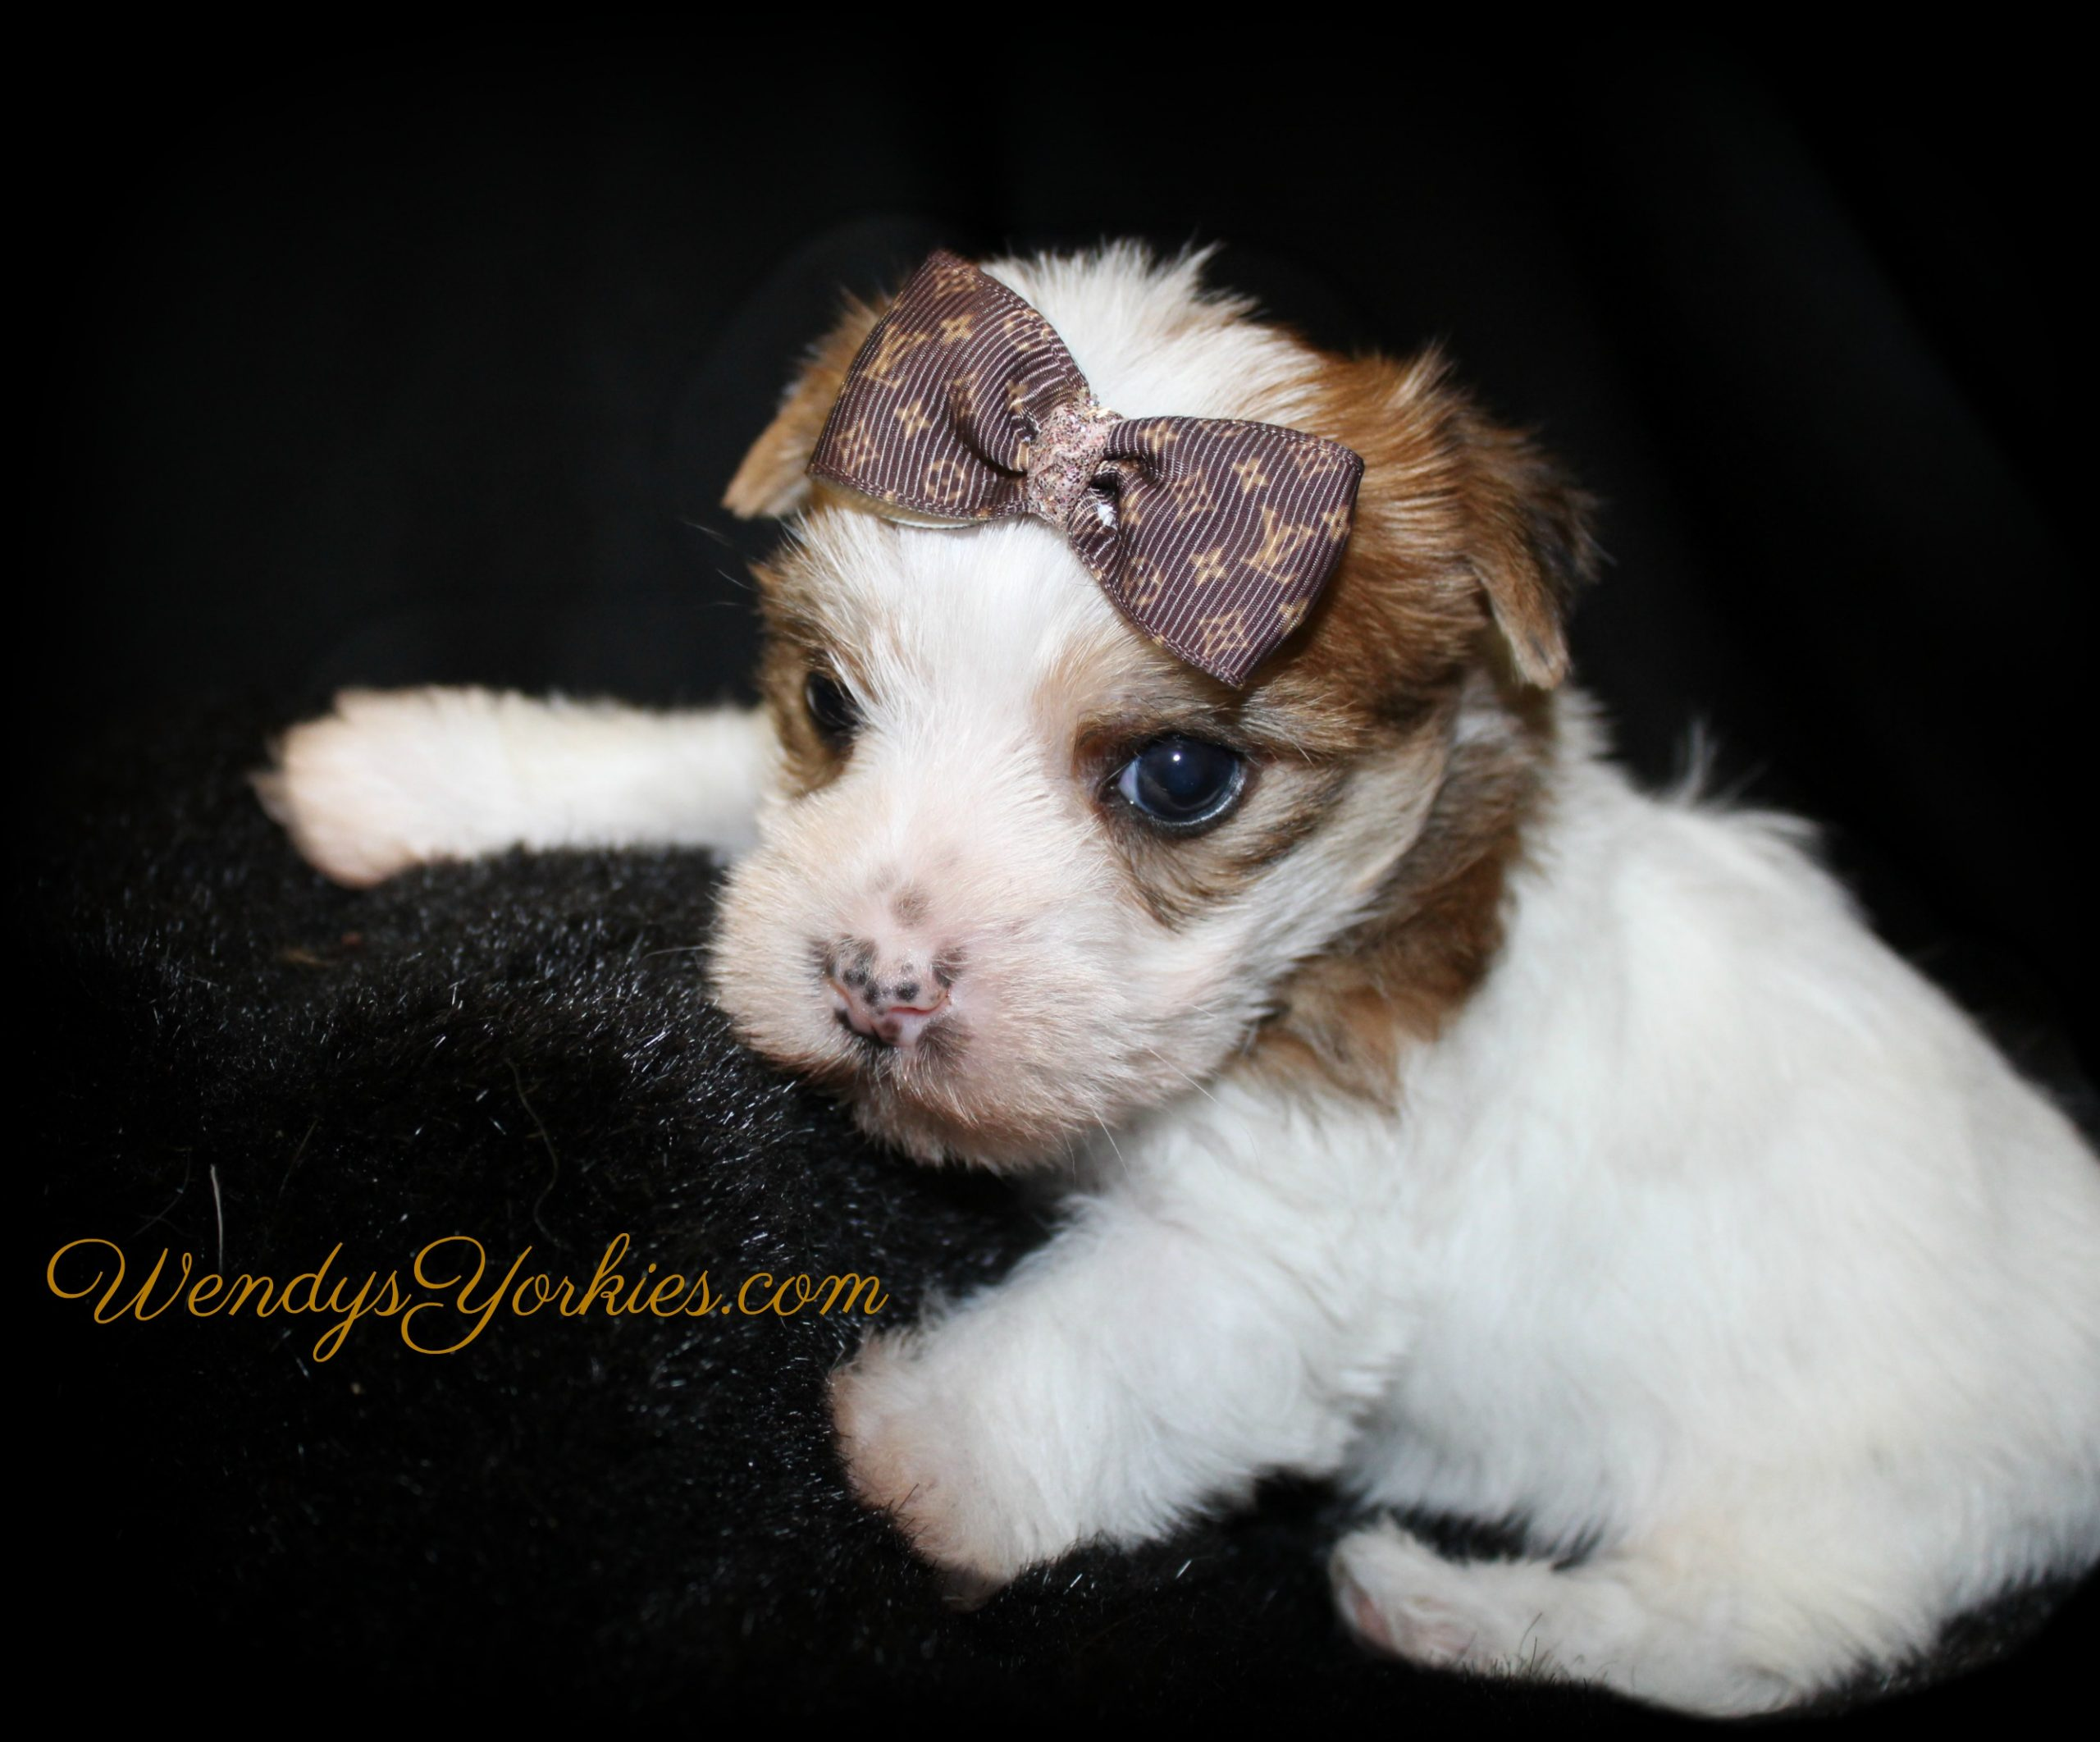 Parti Yorkie puppy for sale in Texas, LB m1, WendysYorkies.com